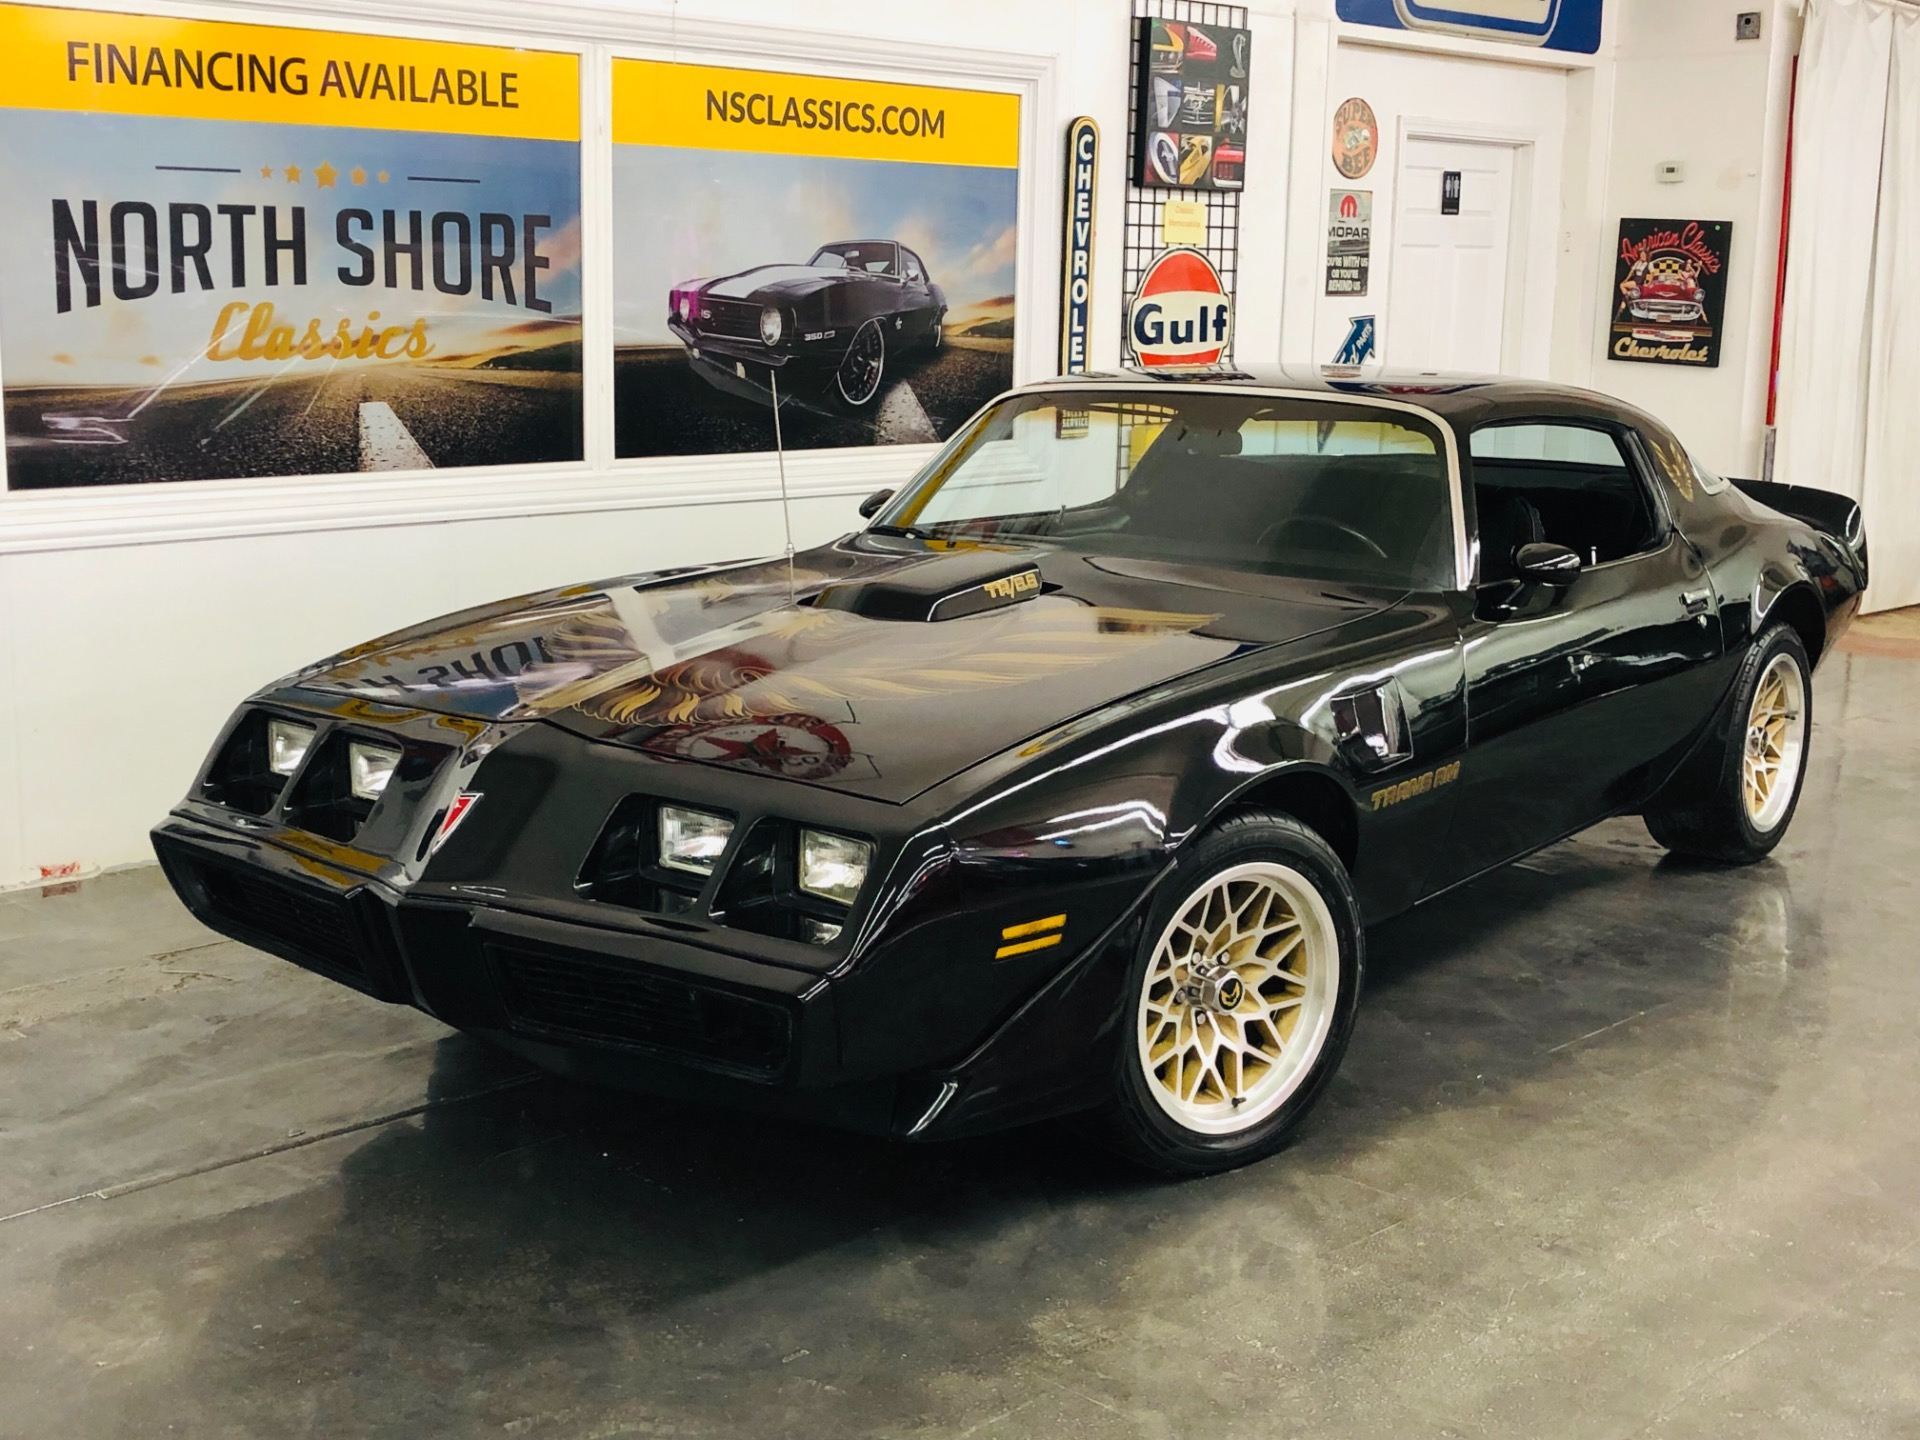 Used 1979 Pontiac Trans Am -6.6 403 ENGINE-AUTOMATIC-PRO TOURING LOOK-BLACK SMOKEY/BANDIT-VIDEO | Mundelein, IL